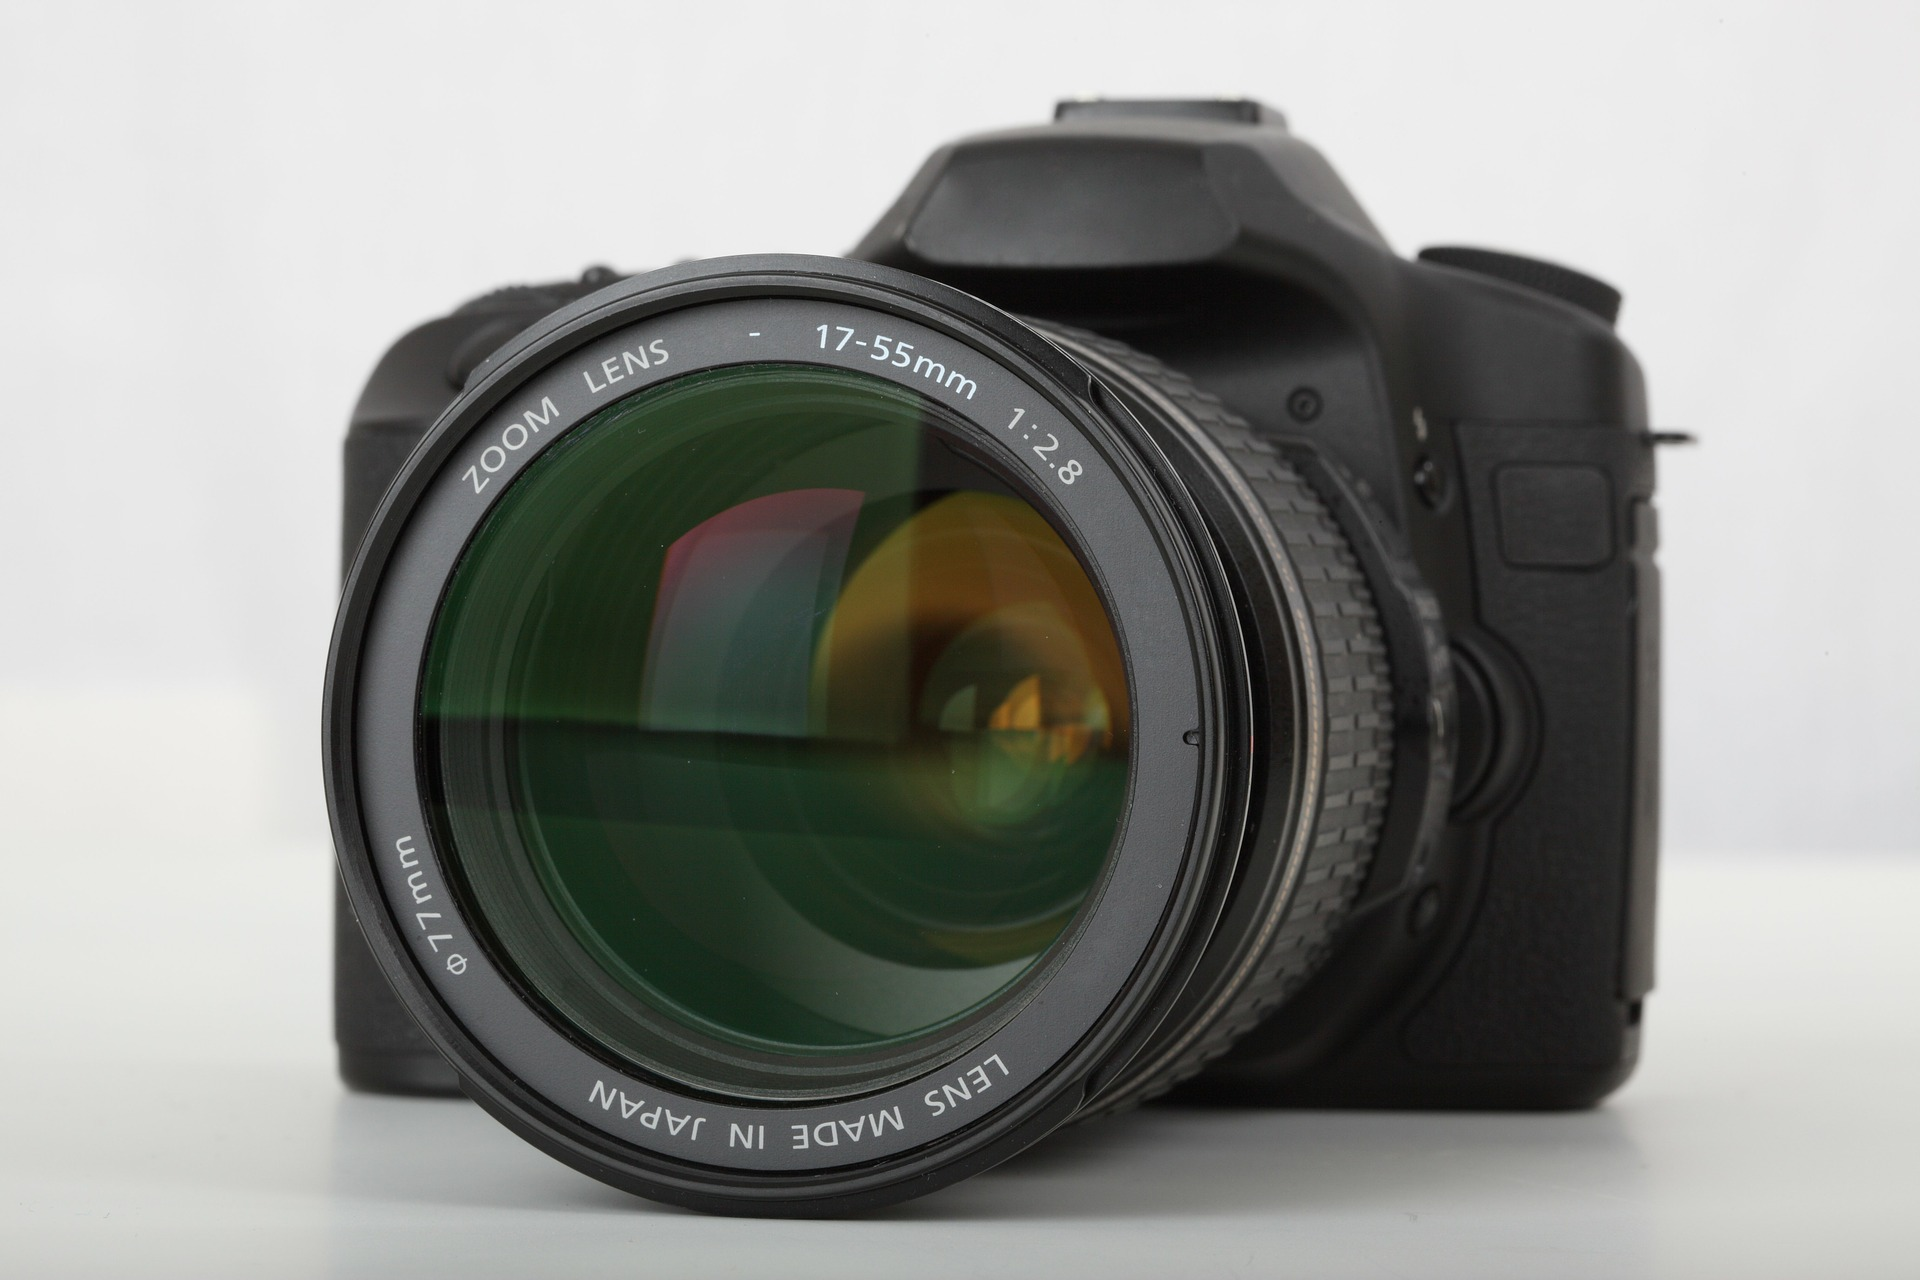 Camera lens to show how to find your lens diameter size to buy the right filter